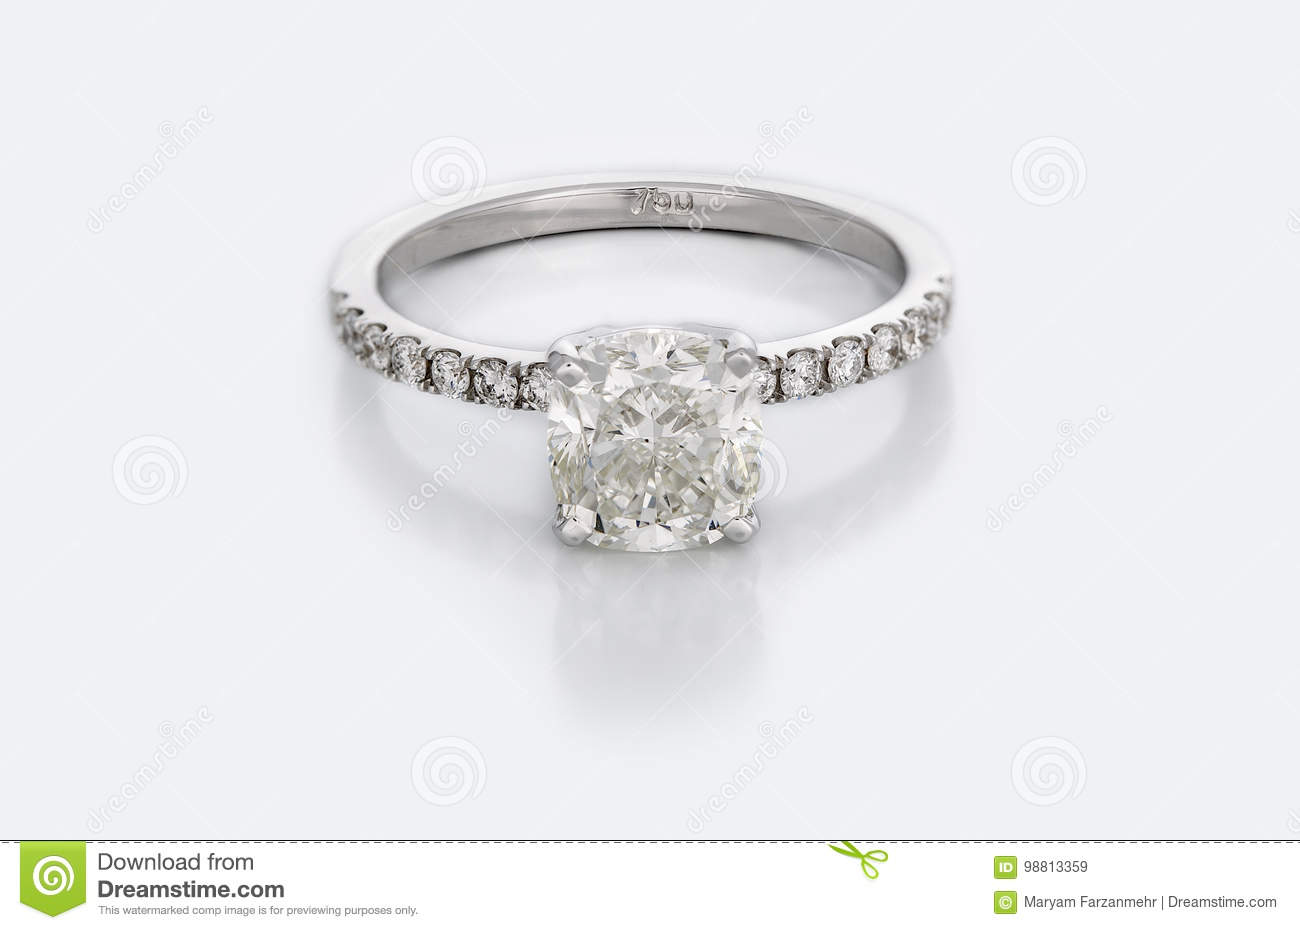 Grote Diamond Solitaire Engagement of Trouwring